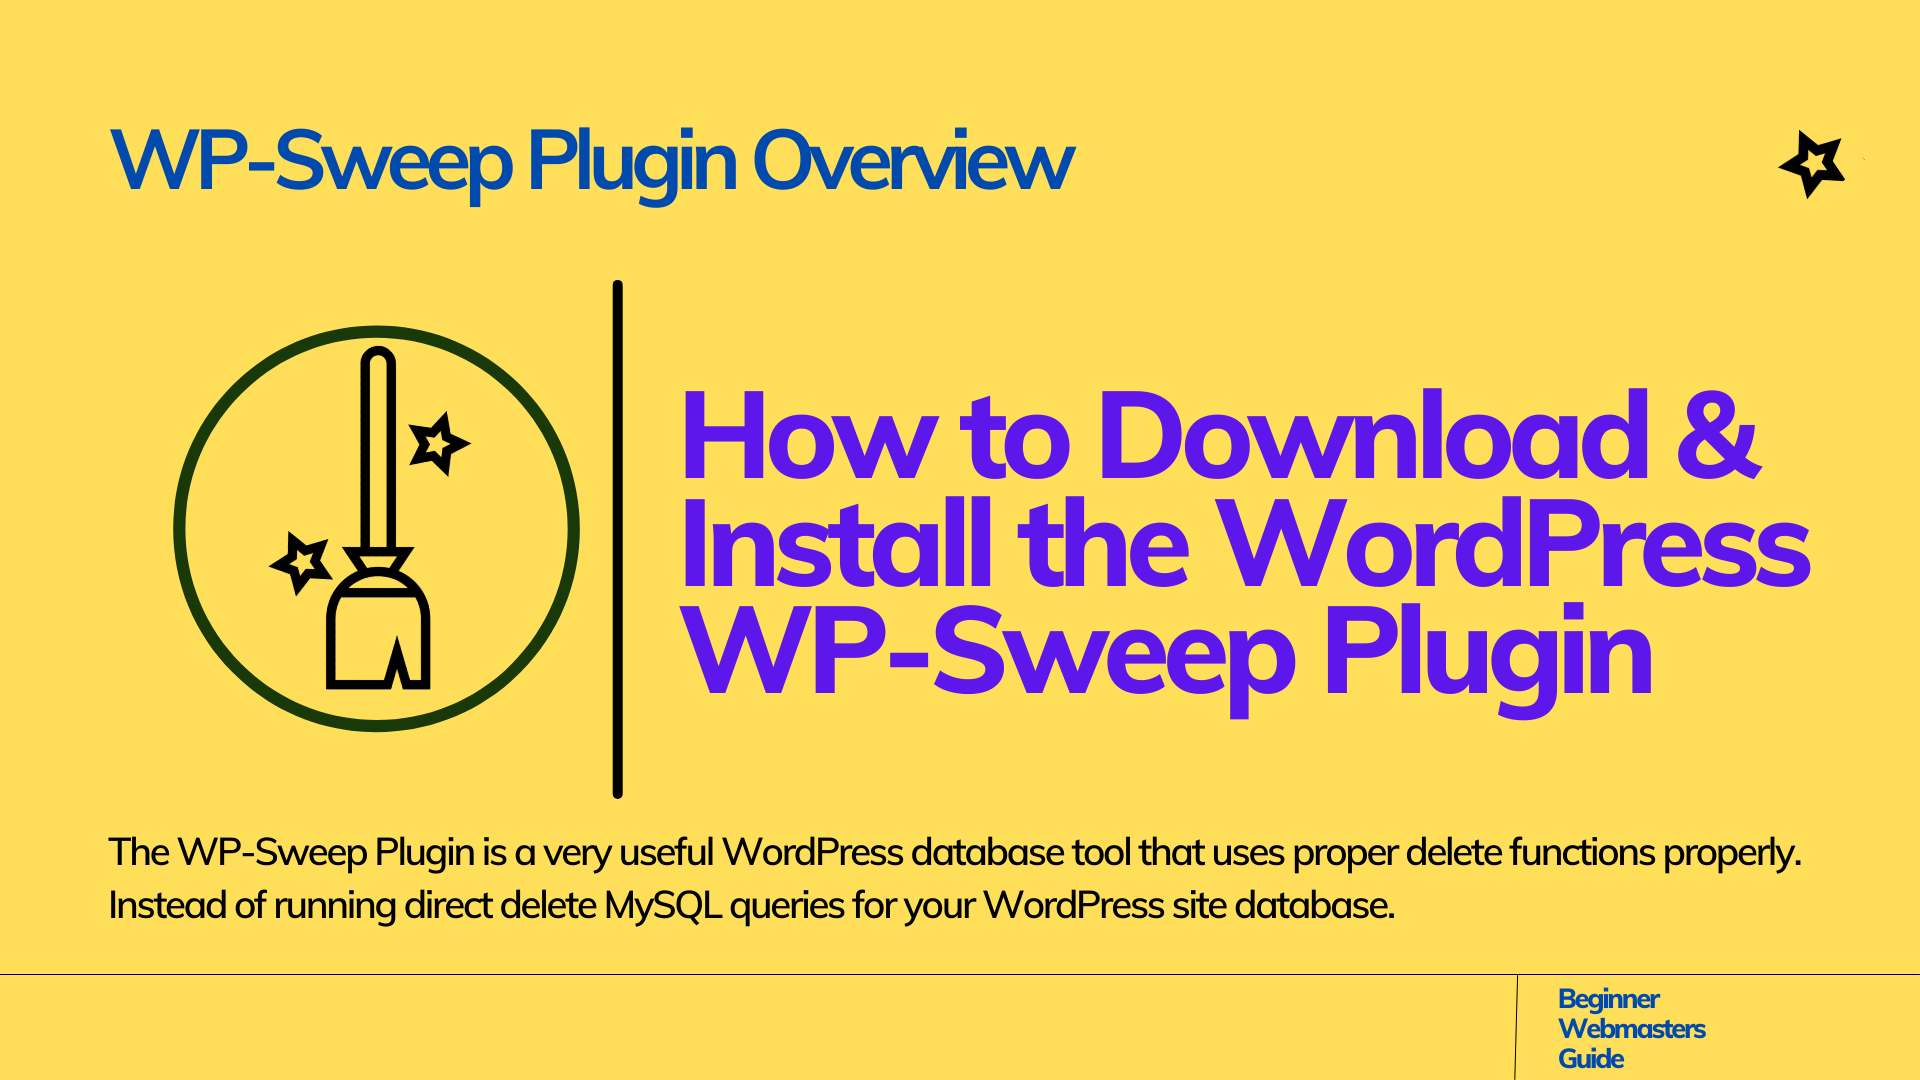 What is WP-Sweep Plugin?